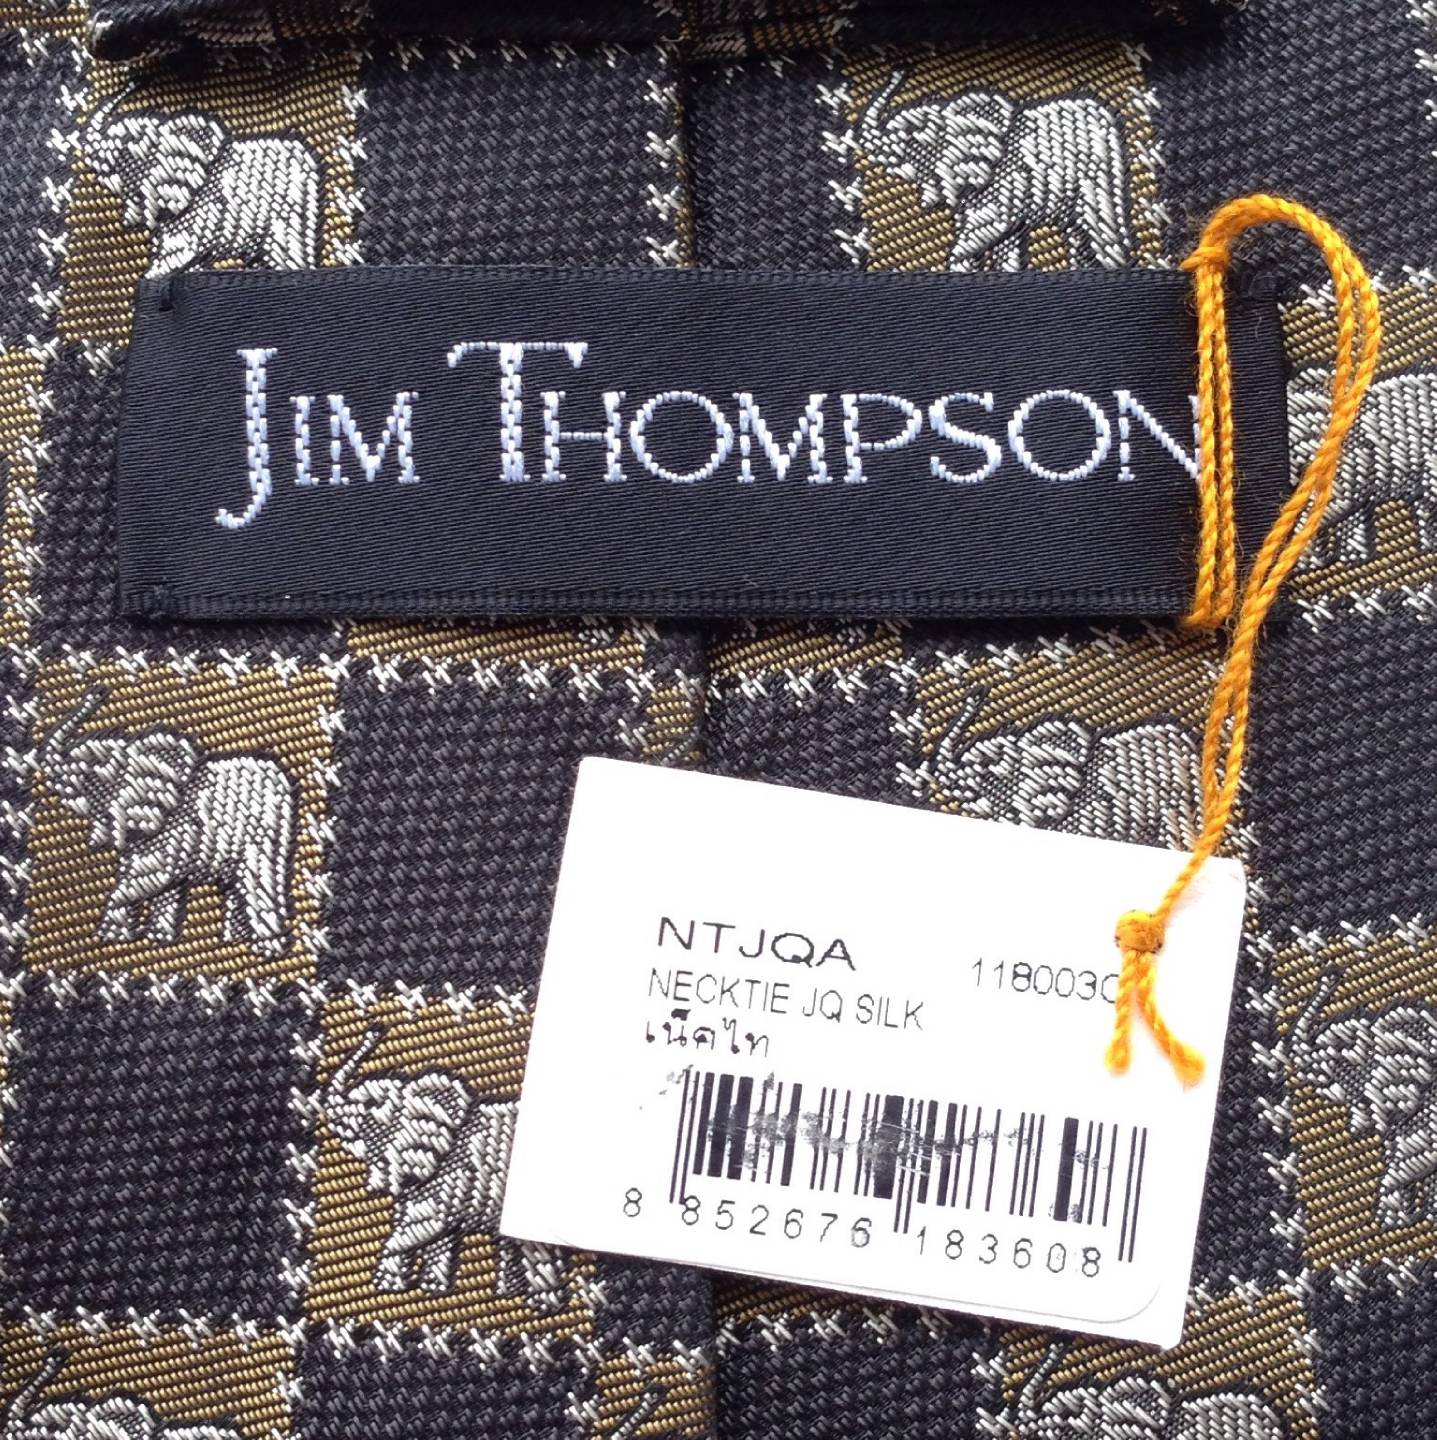 Nwt jim thompson elephant check animal print repeat for Thai silk jim thompson